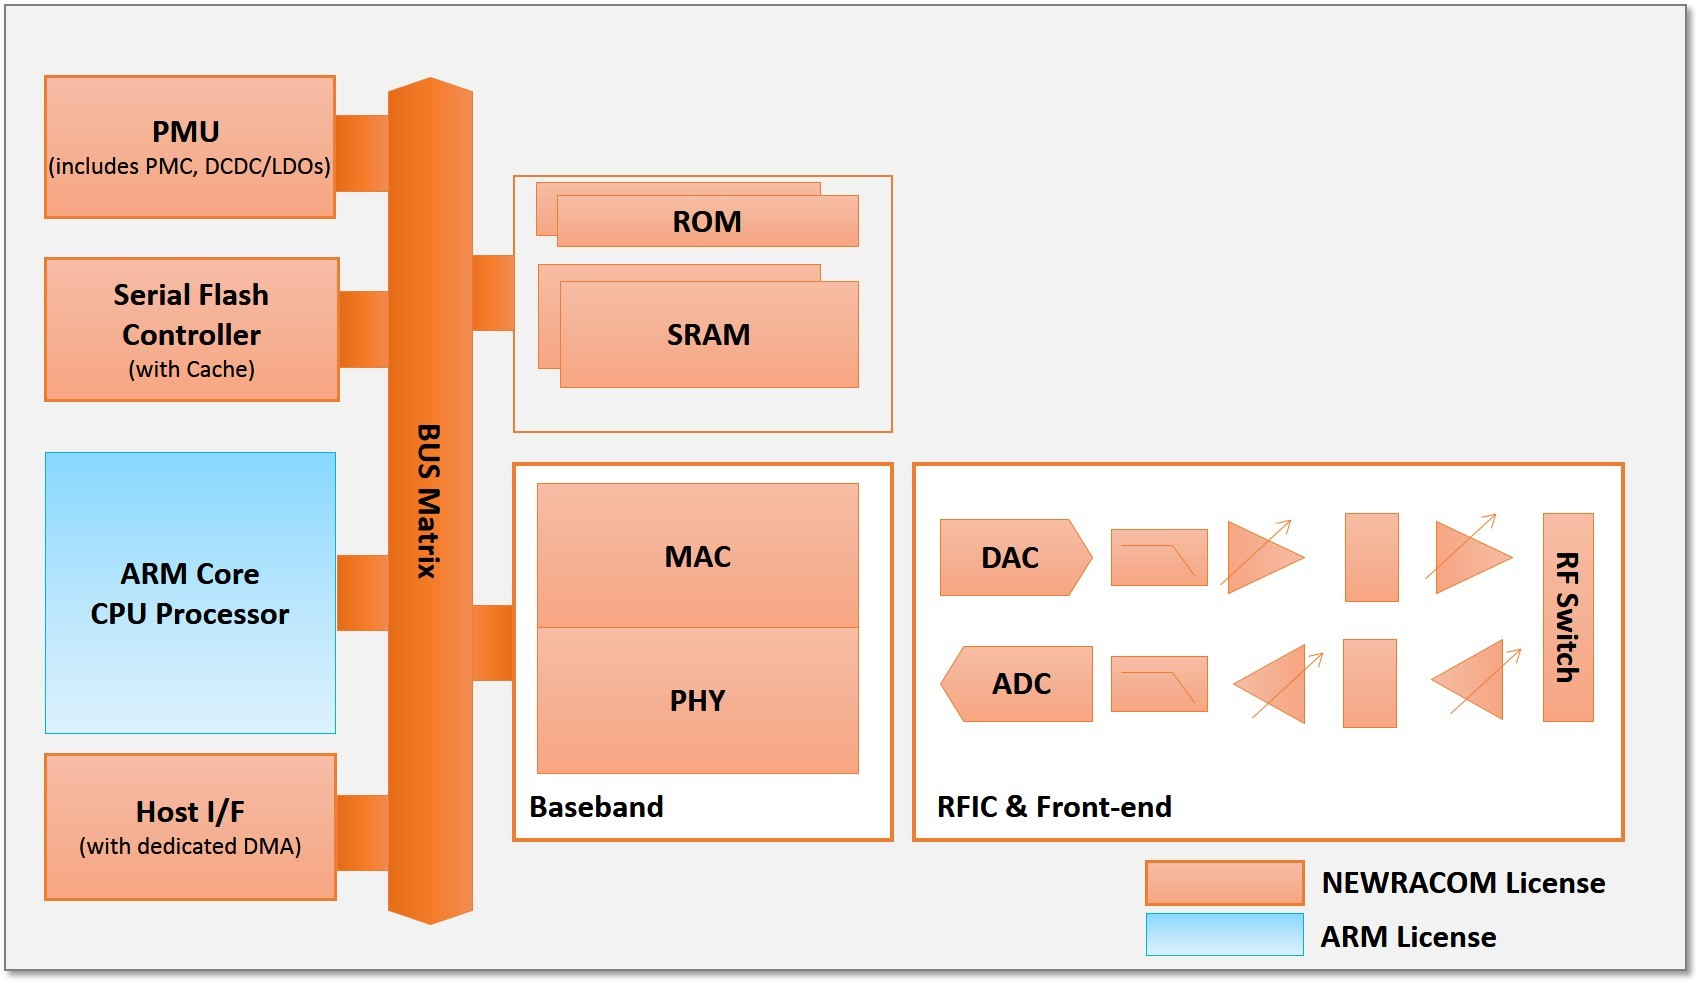 Newracom Announces Availability of Ultra-Low Power ARM Core Based Wi